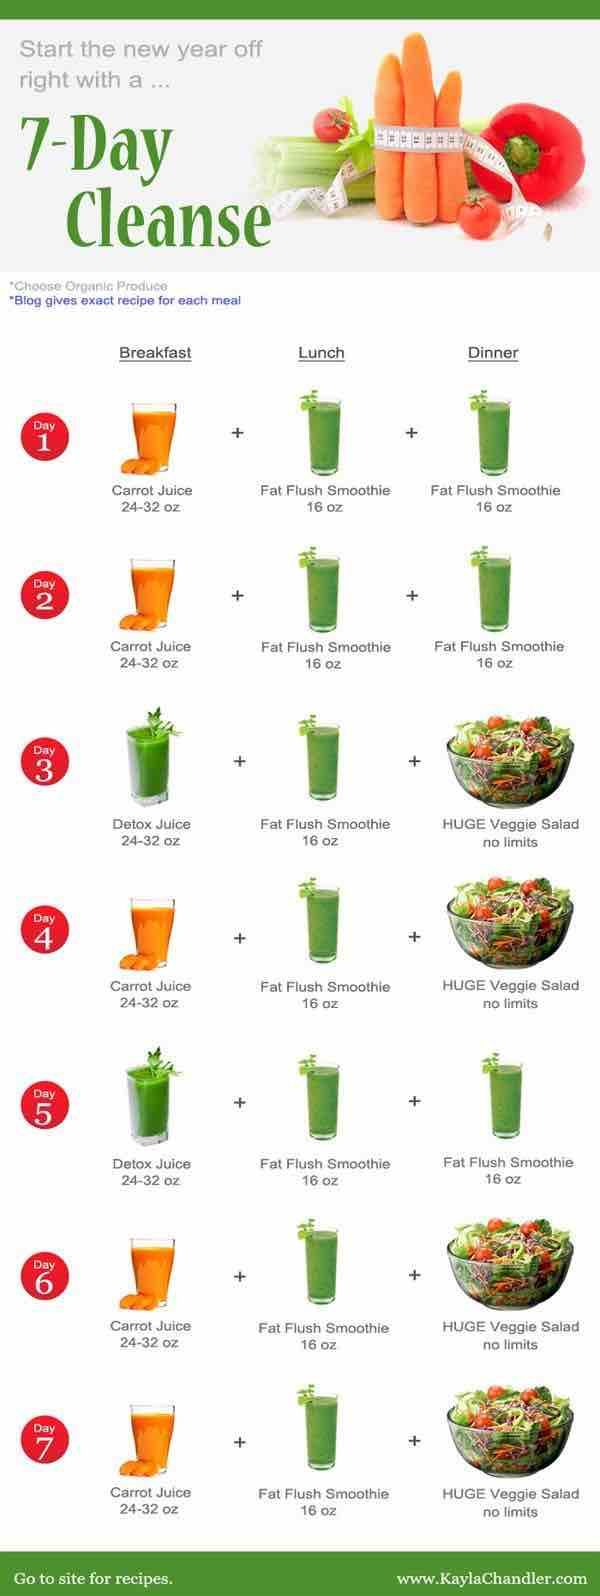 25+ best ideas about 10 Day Cleanse on Pinterest | 10 day ...